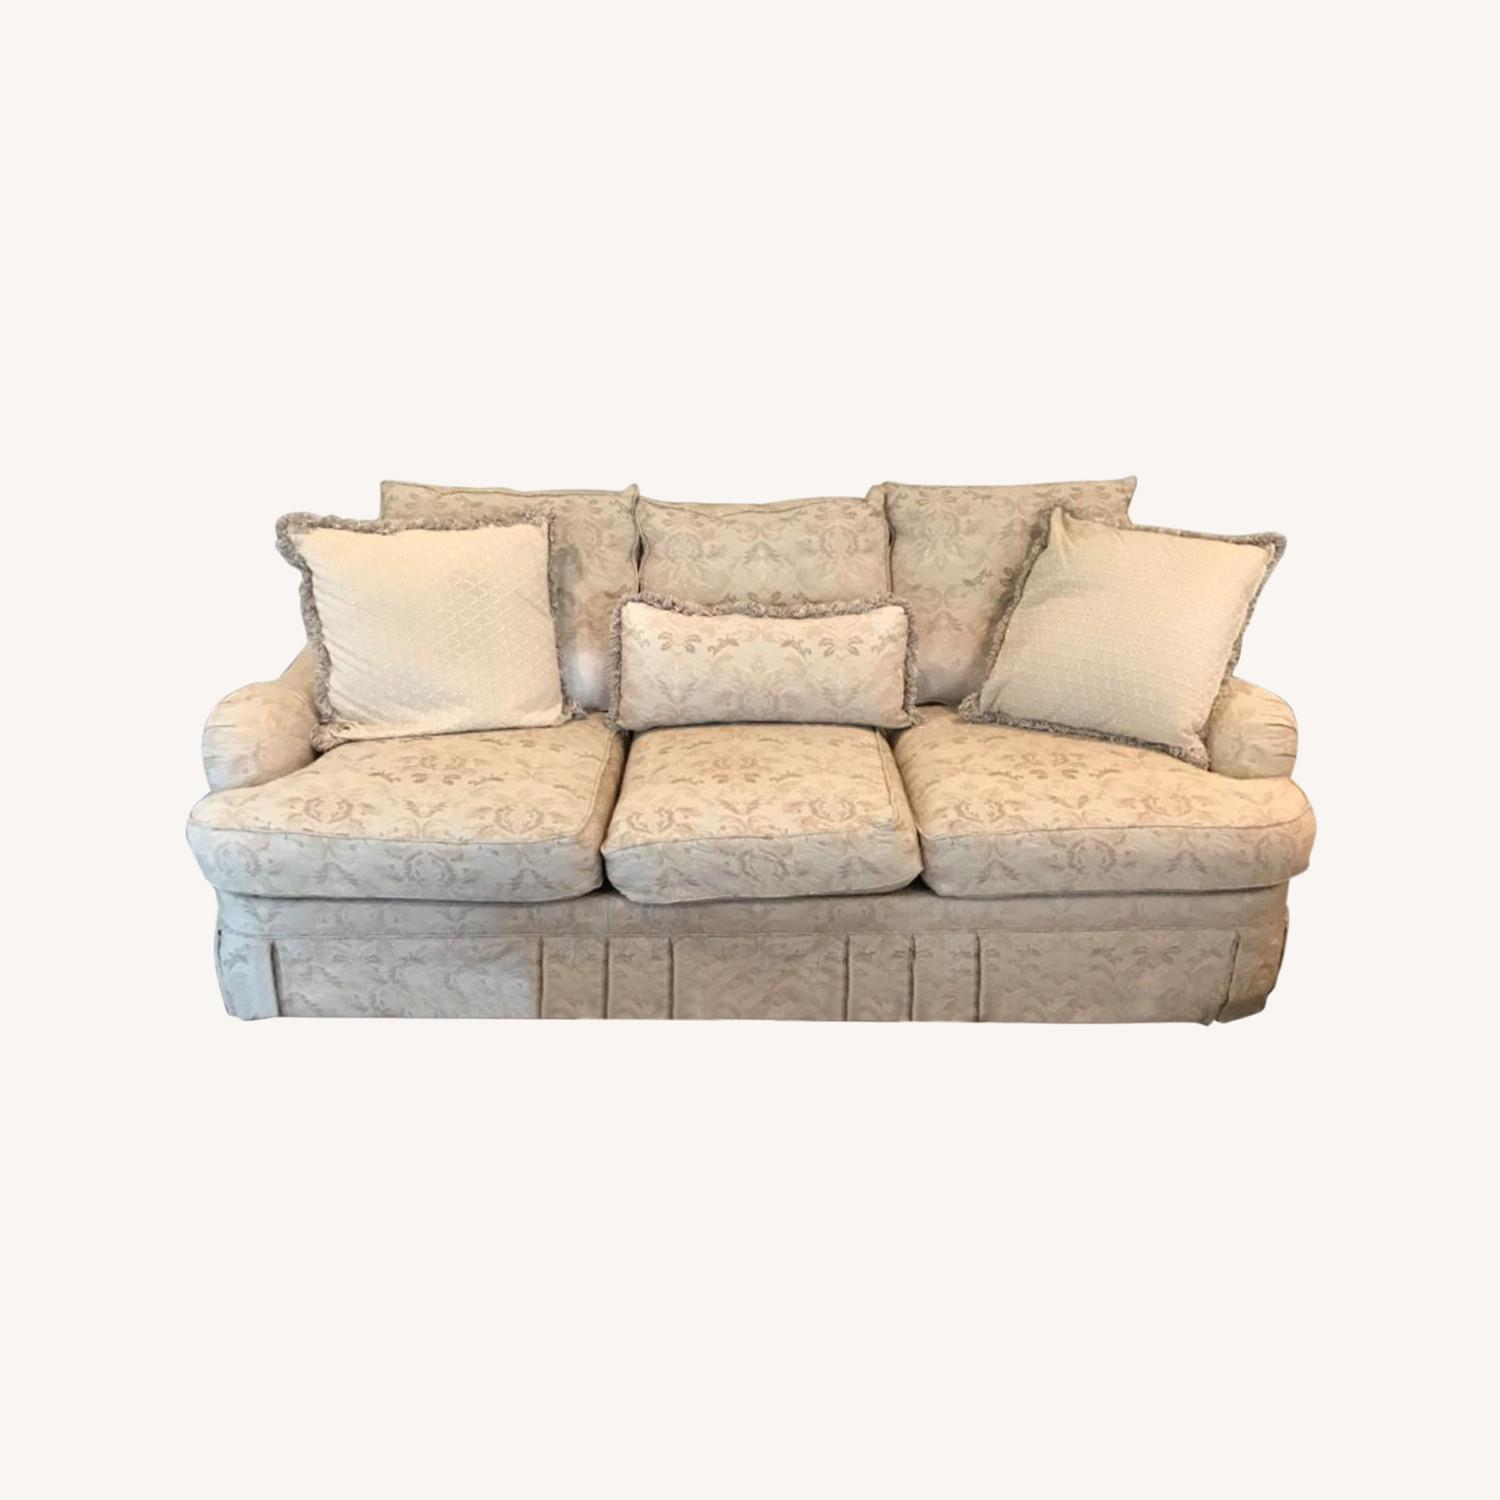 Bernhardt Living Room Couch - image-0